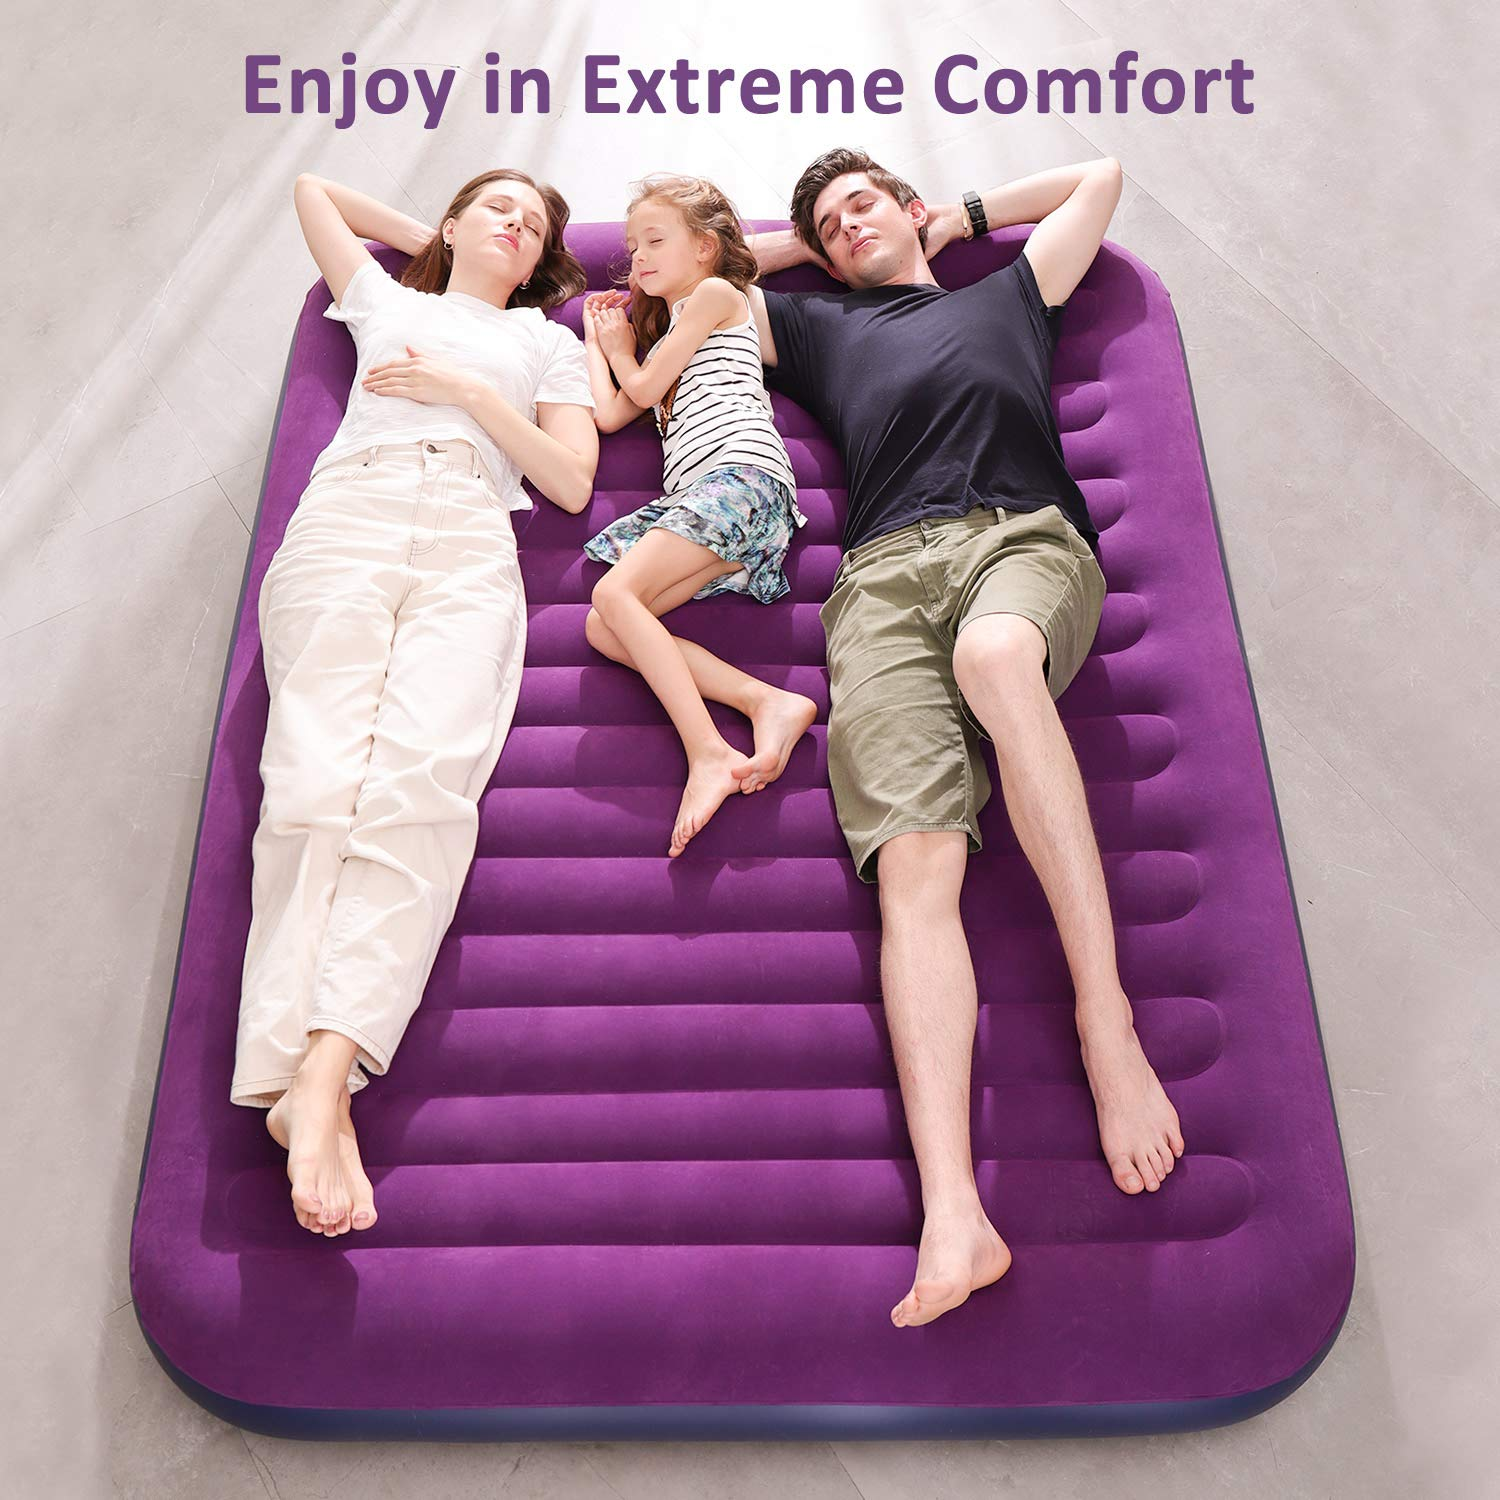 OlarHike Queen Air Mattress, Inflatable Single High Airbed for Guests, Blow up Raised Air Bed for Camping with Electric Air Battery Pump, Purple by OlarHike (Image #2)